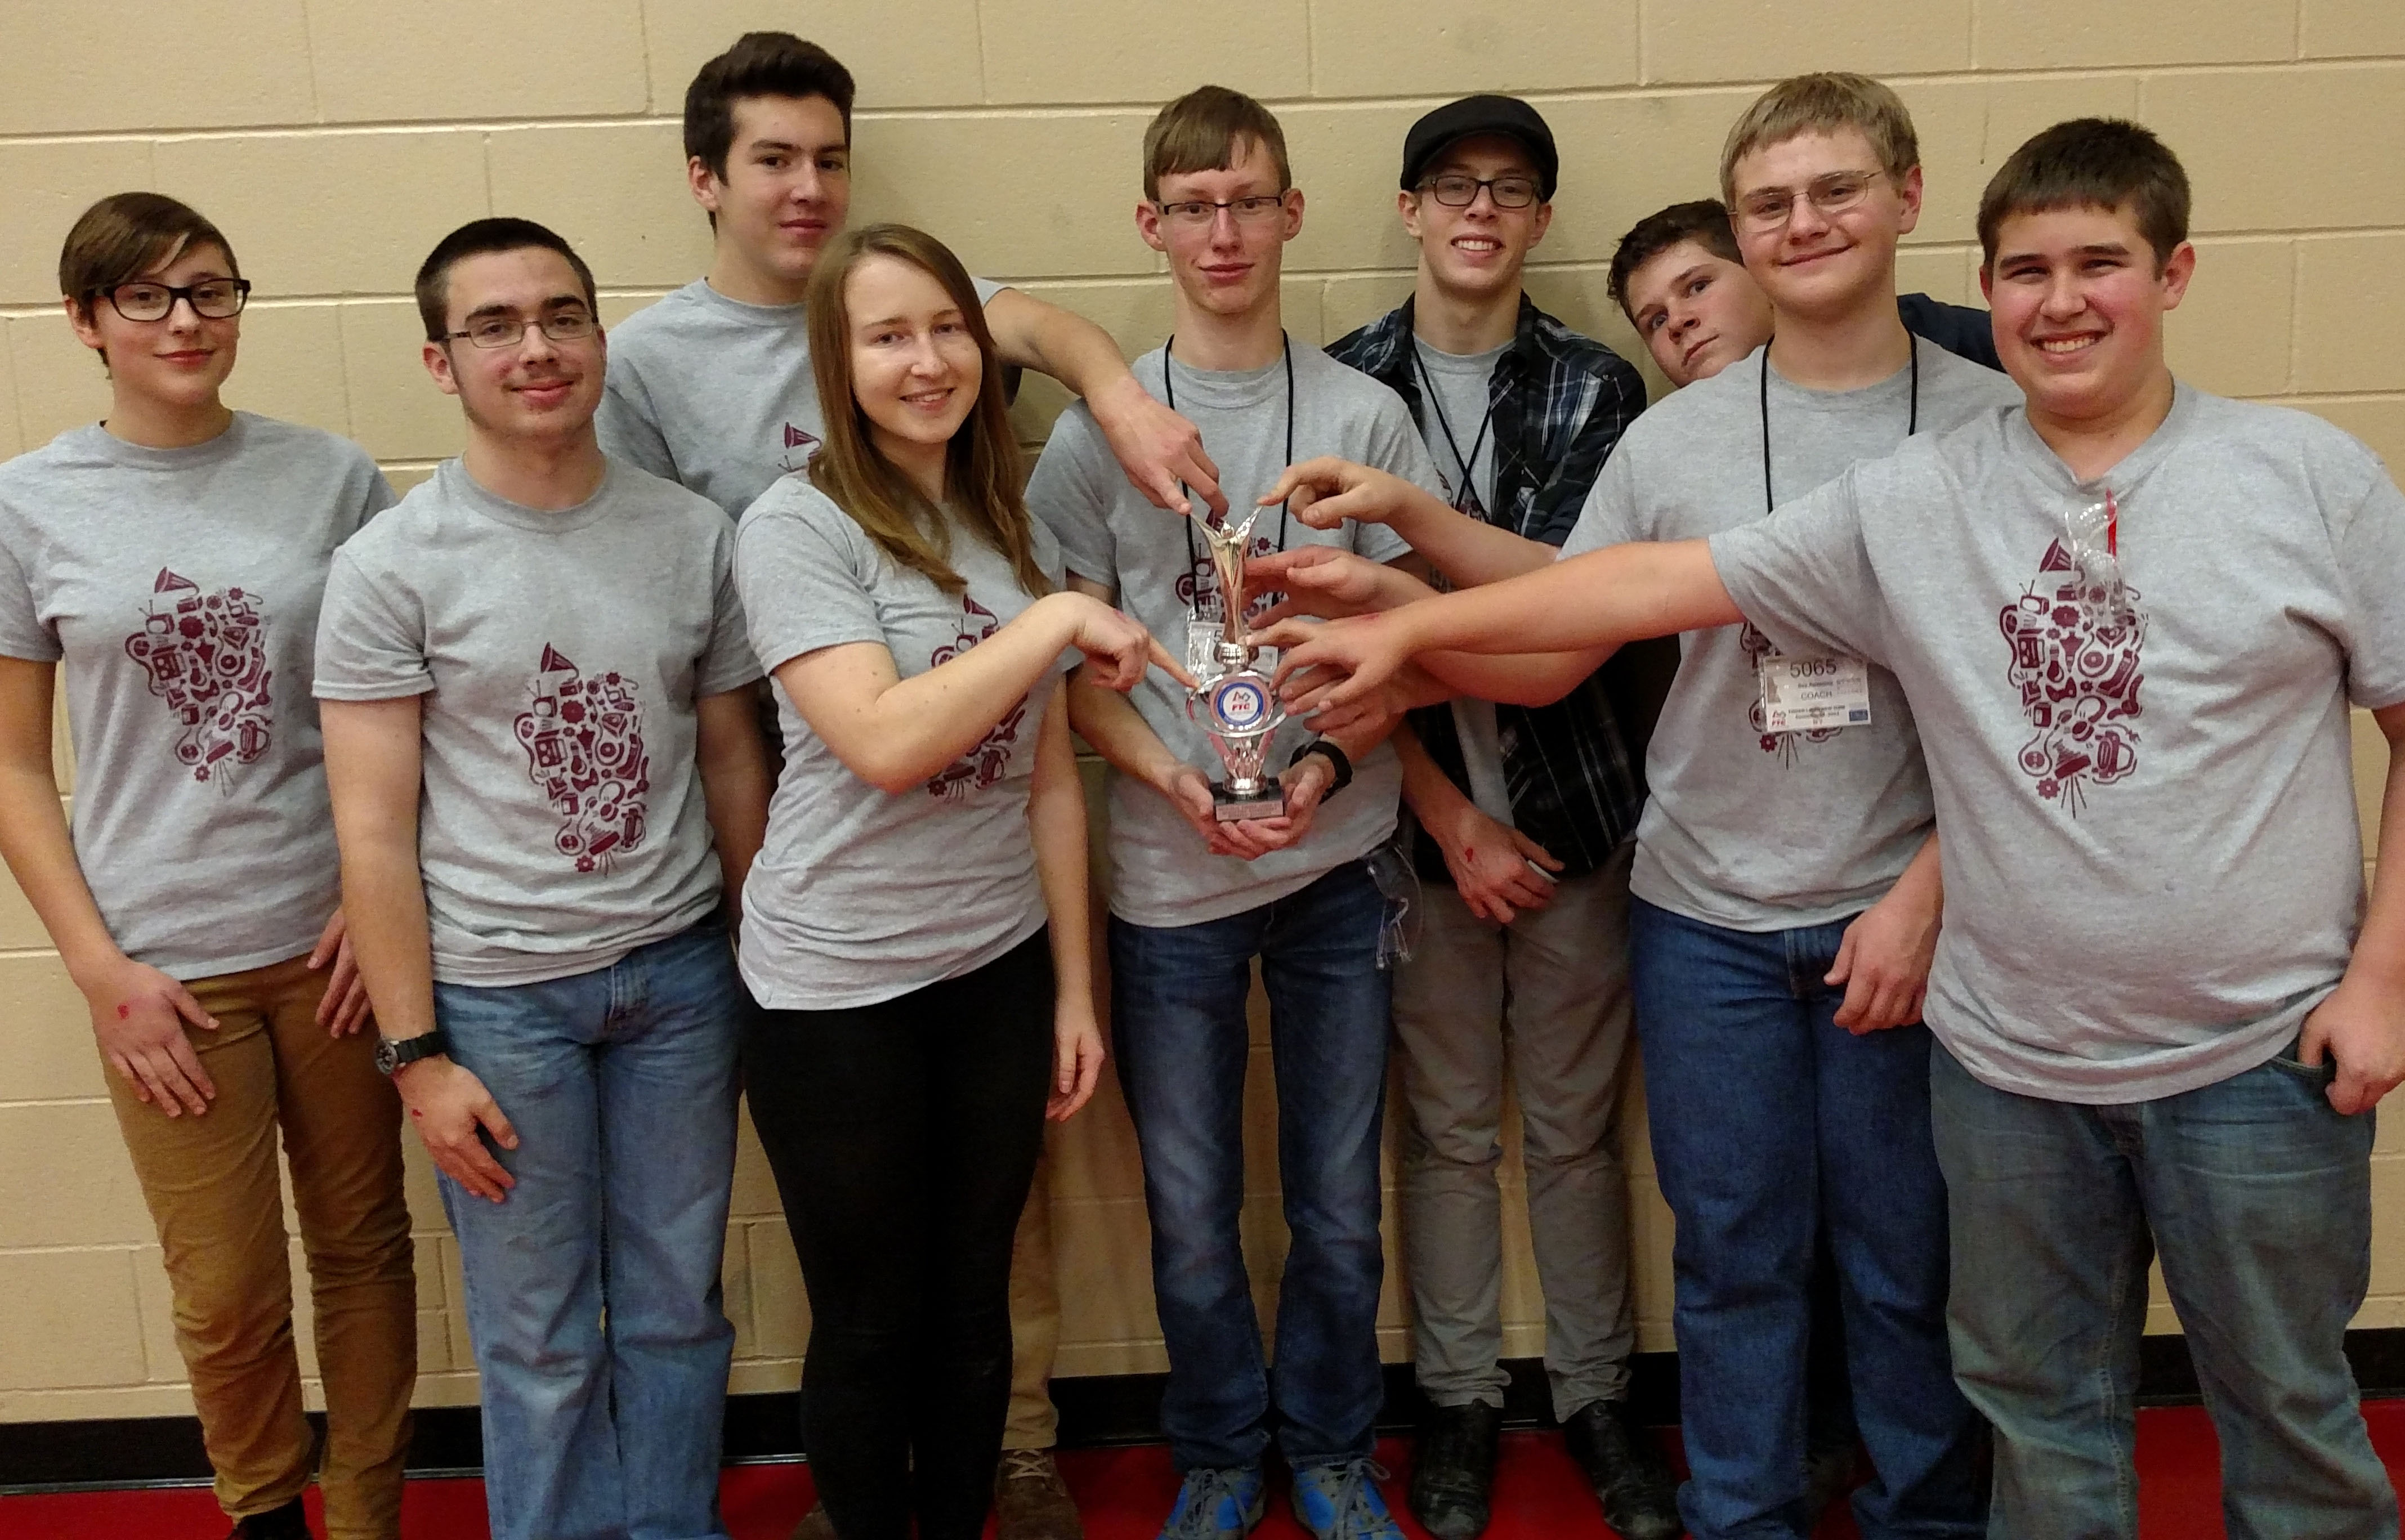 The Byron-Bergen High School Robotics Team (l-r) Celia Mercovich, Ben Chaback, Josh Phelps, Clare Fraser, Matt Hilbert, Nate McCarthy, Josh Bush, Nick Kelly and Dan Jensen.